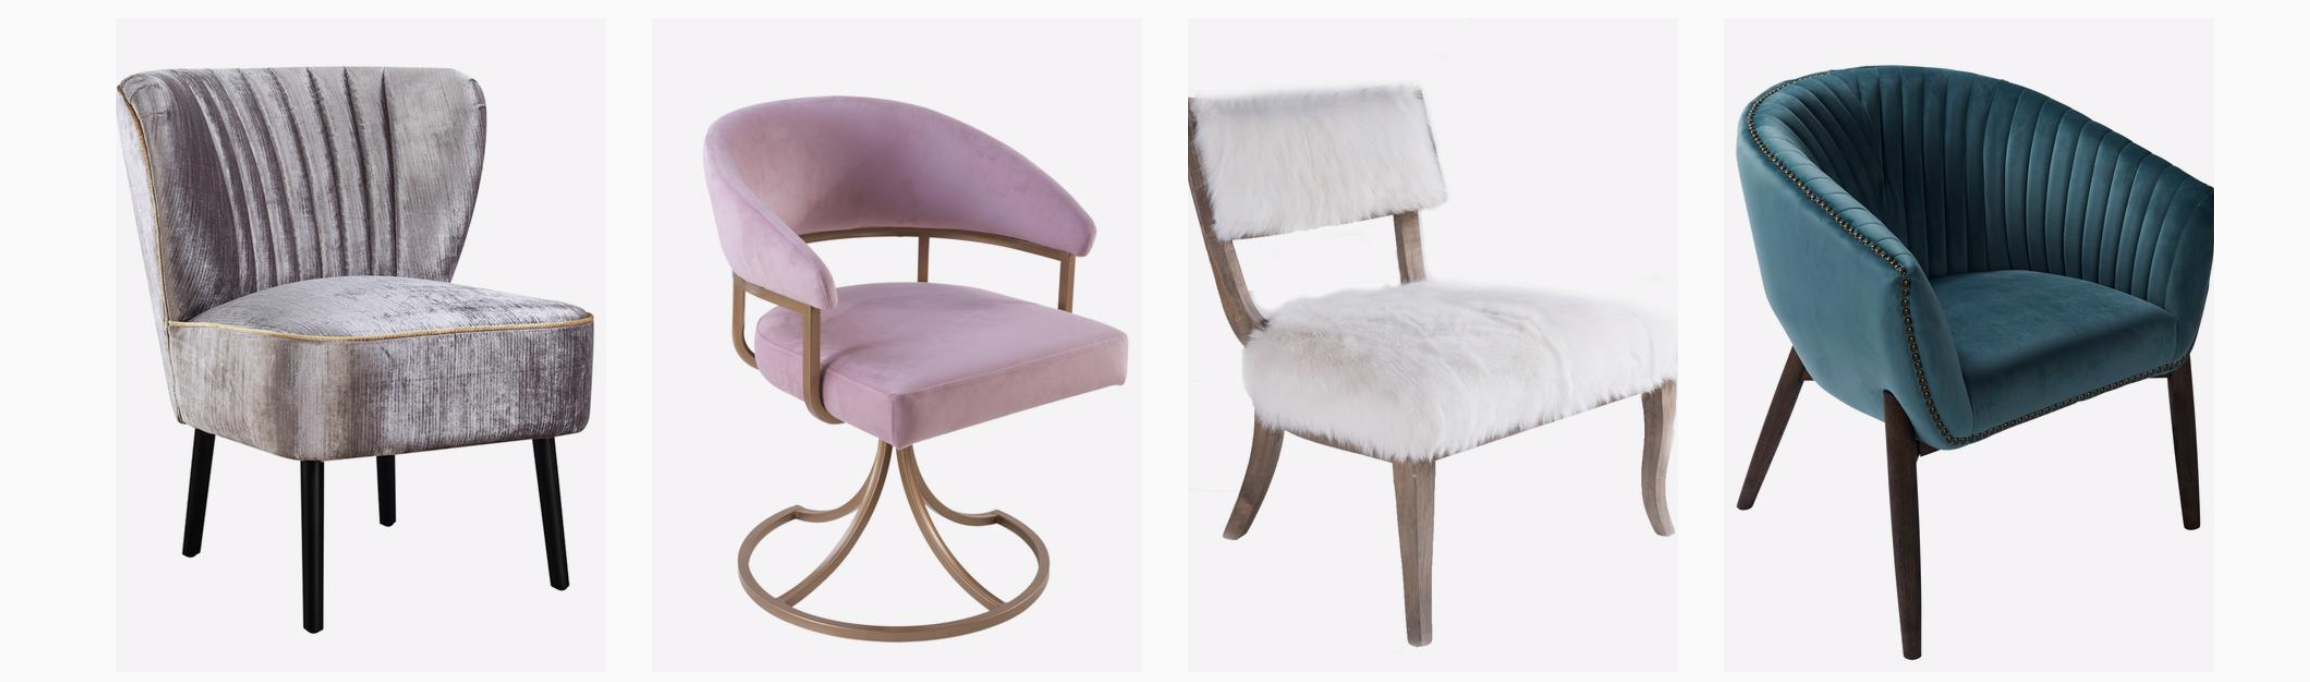 New Furniture Collection -